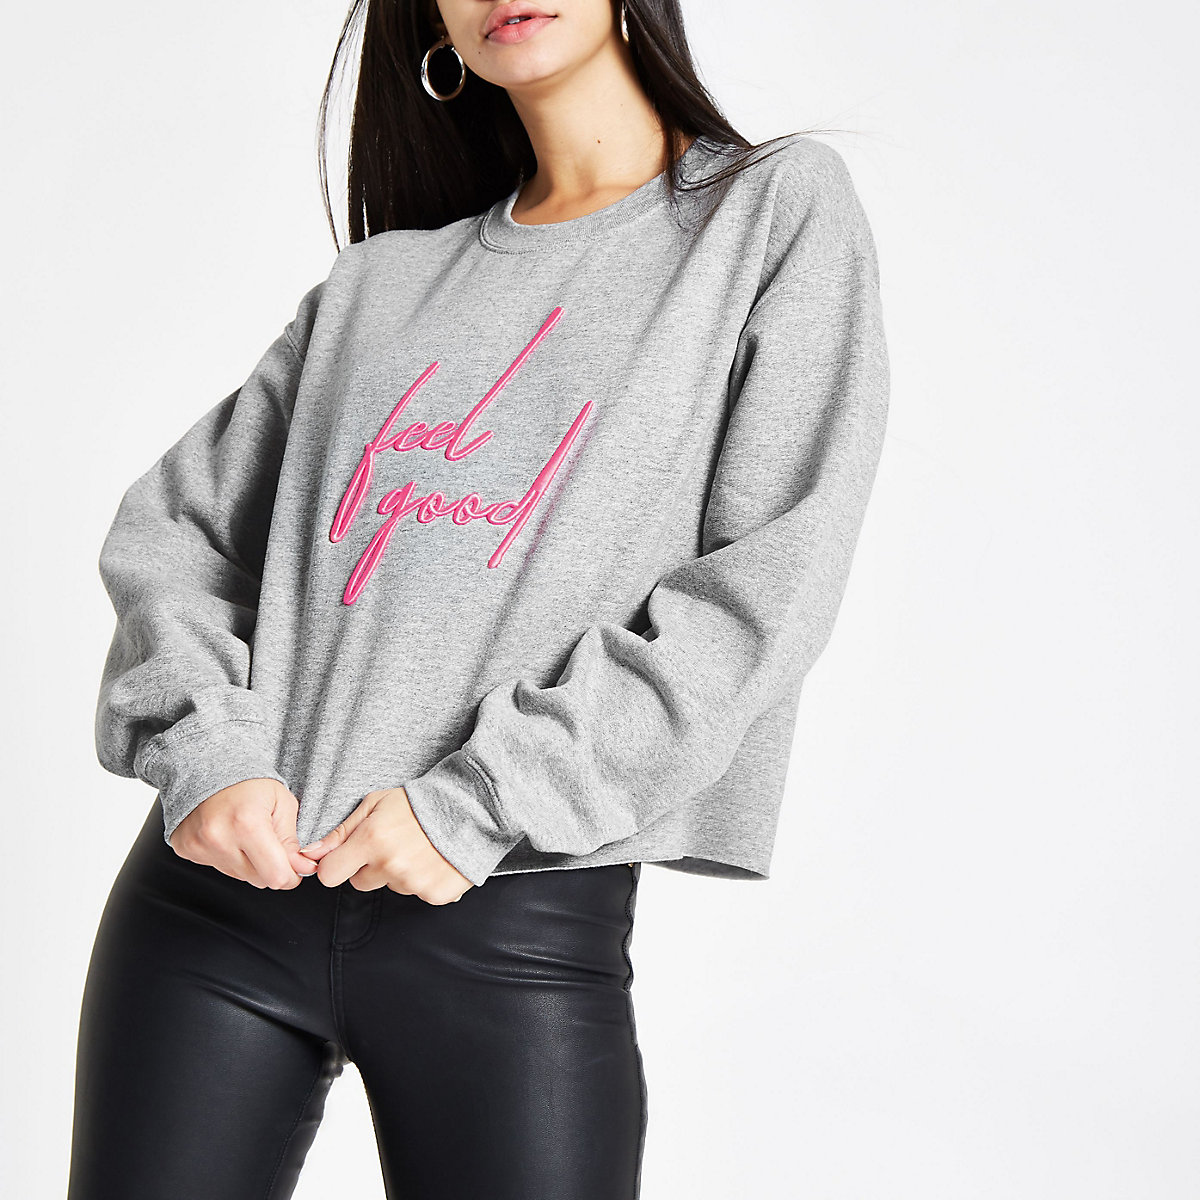 Grey 'feel good' embroidered sweatshirt